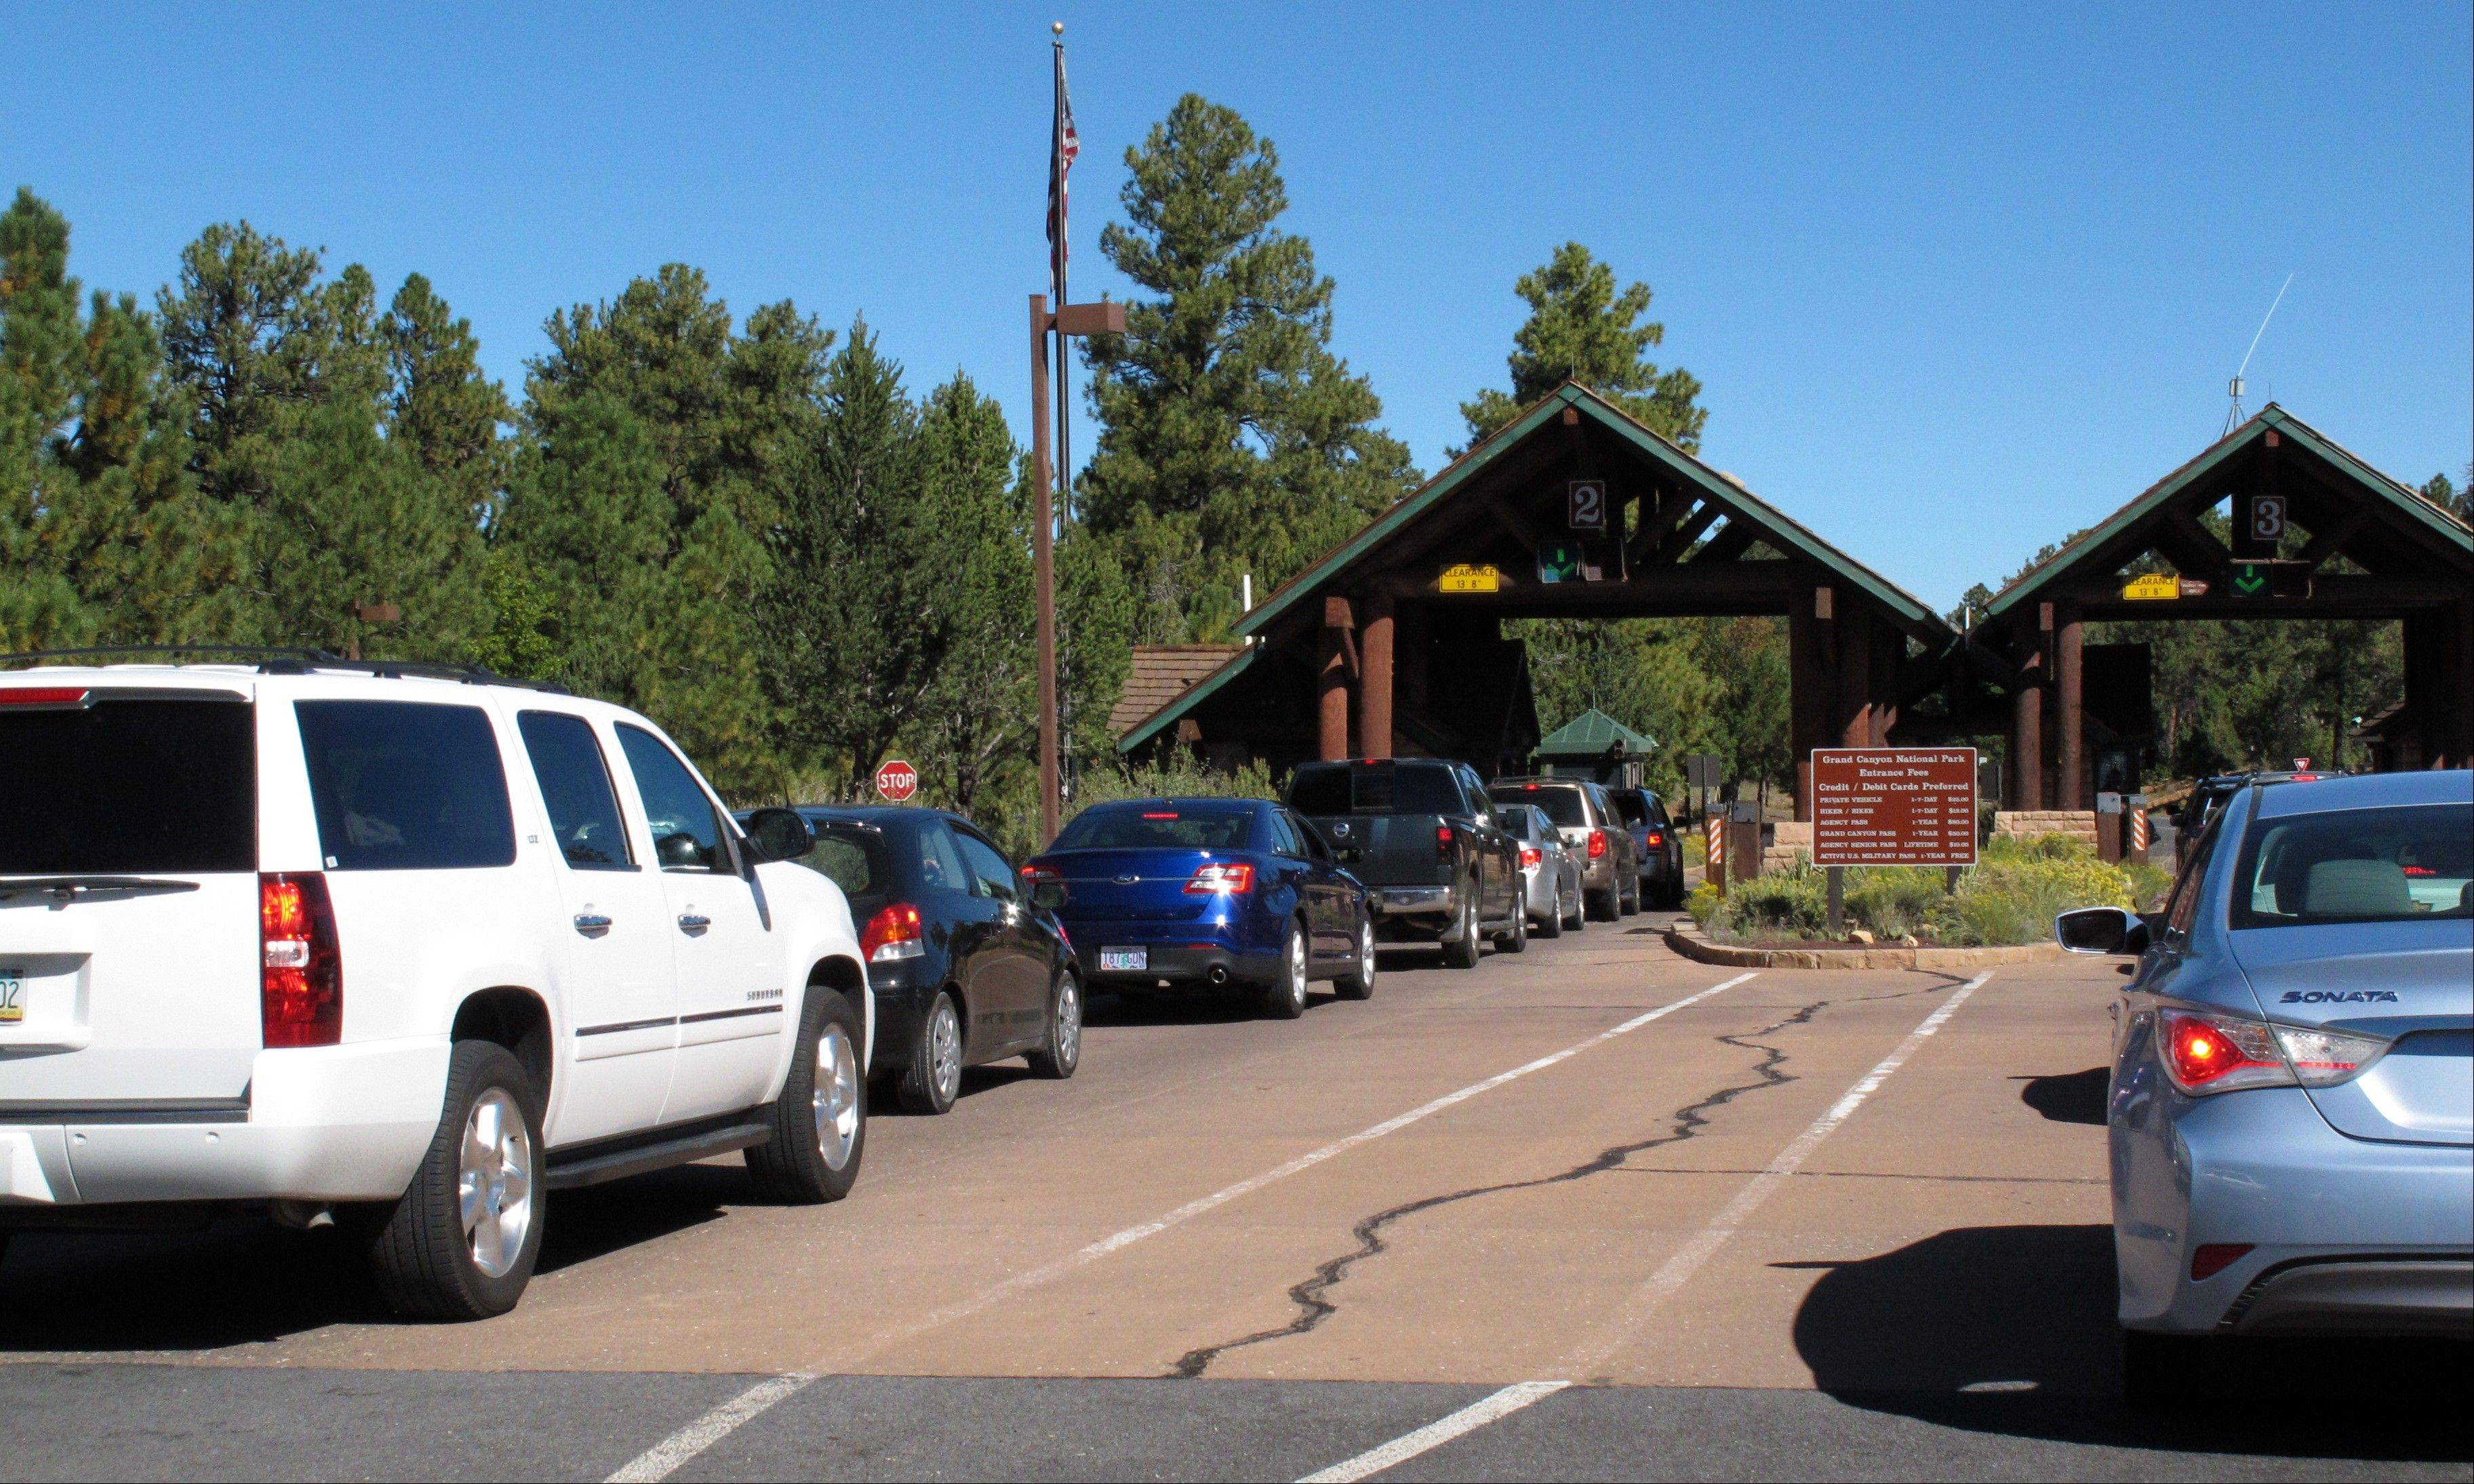 Cars line up at Grand Canyon National Park�s South Rim entrance before the park was closed on Oct. 1 due to the partial government shutdown. Americans are finding that �the government� entails a lot more than the stereotype of faceless D.C. bureaucrats cranking out red tape.